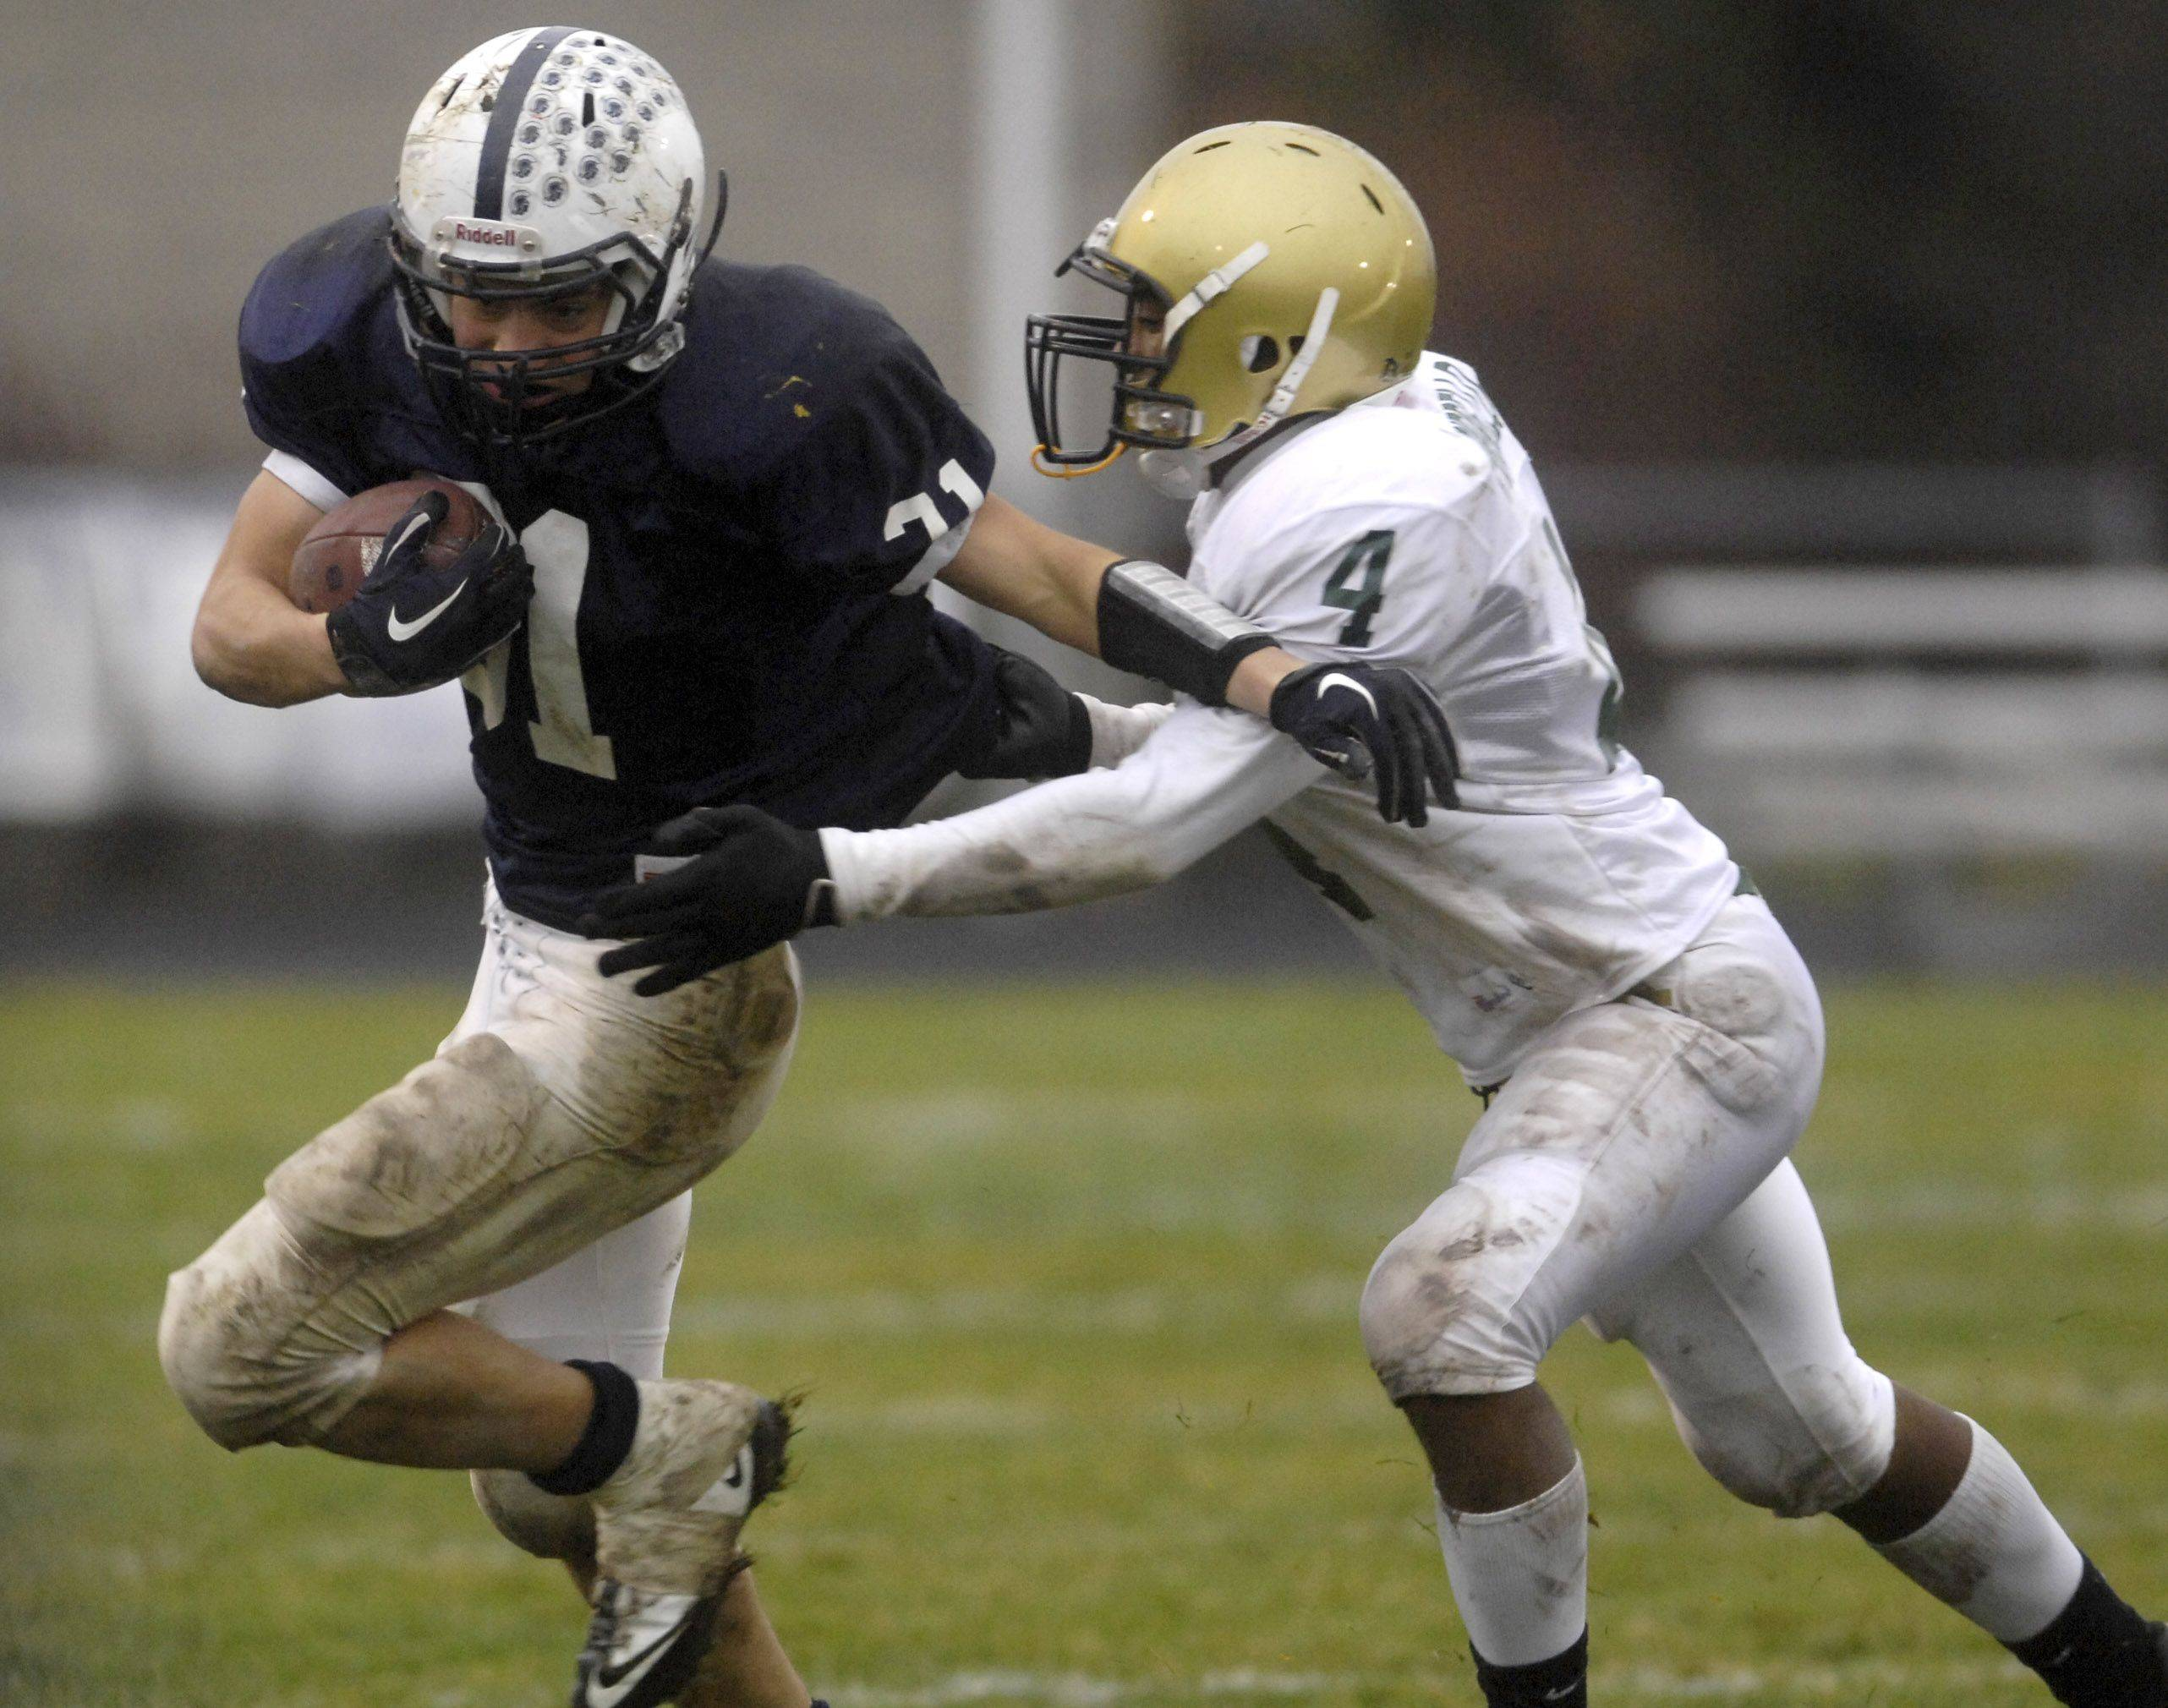 Cary-Grove's Ryan Mahoney breaks free from Rockford Boylan's Tony Pirello during Saturday's playoff game in Cary.